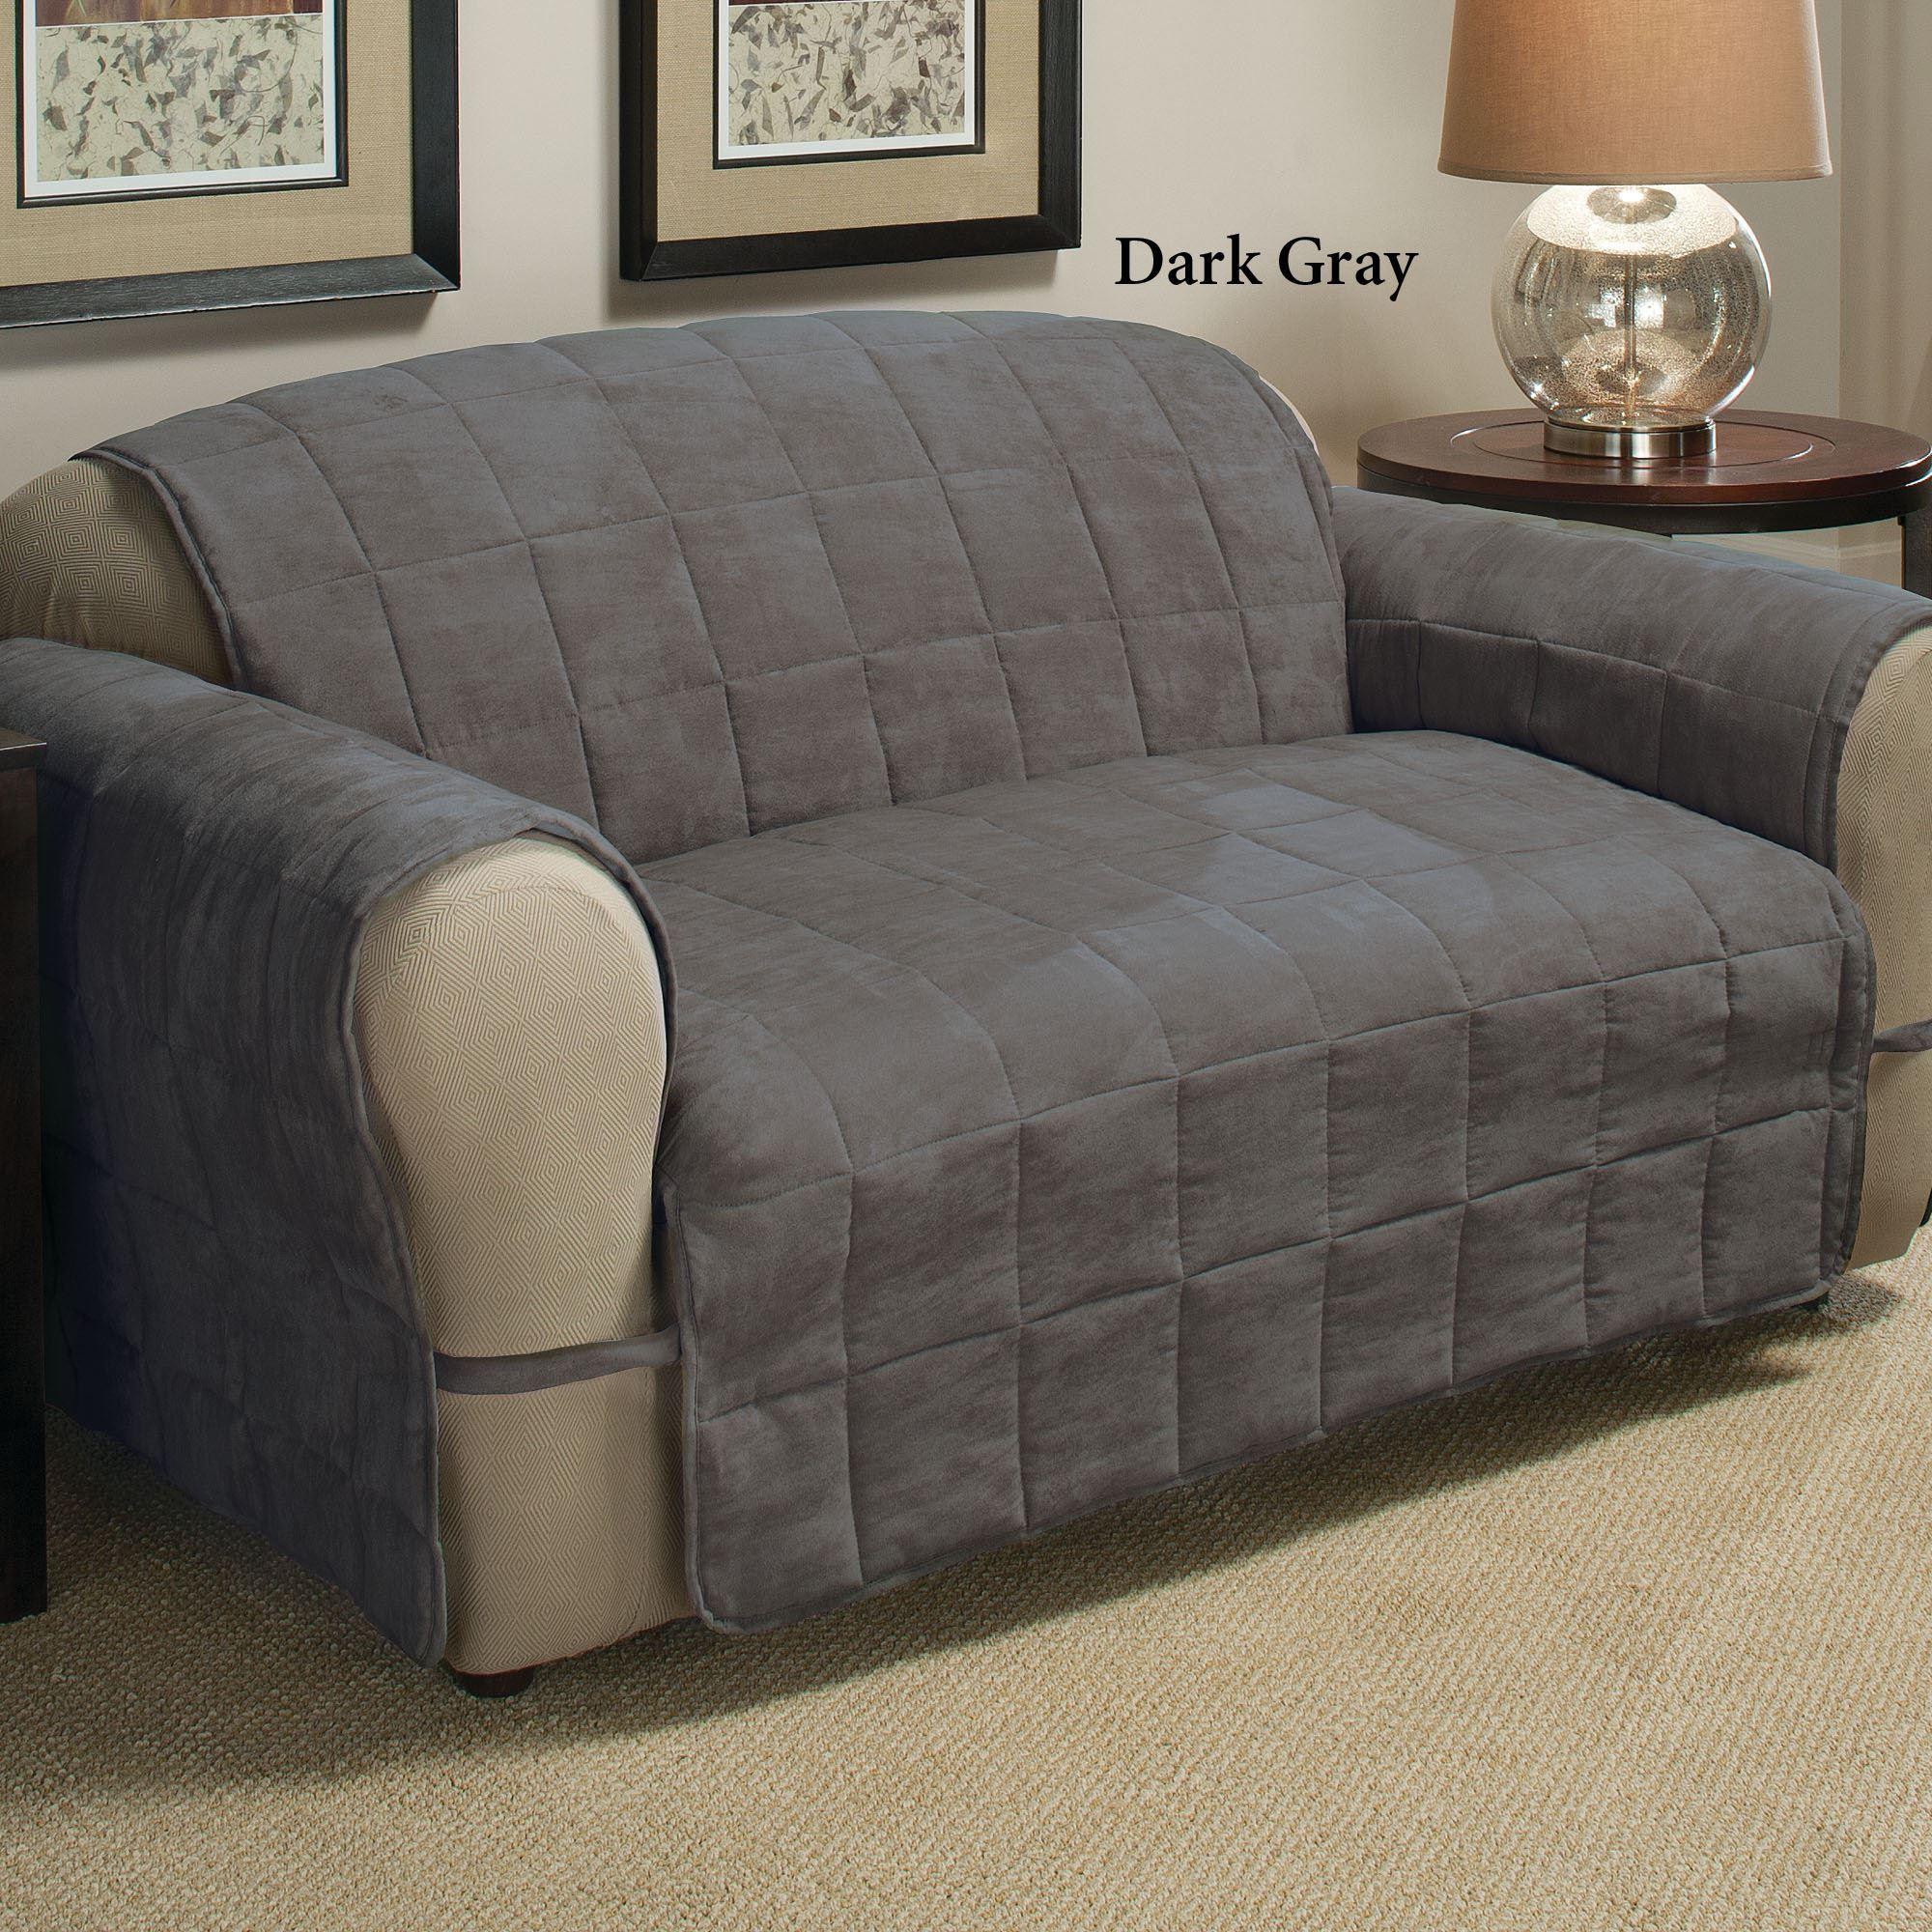 loveseat catalog products slipcover klippan us grey ikea en gray vissle